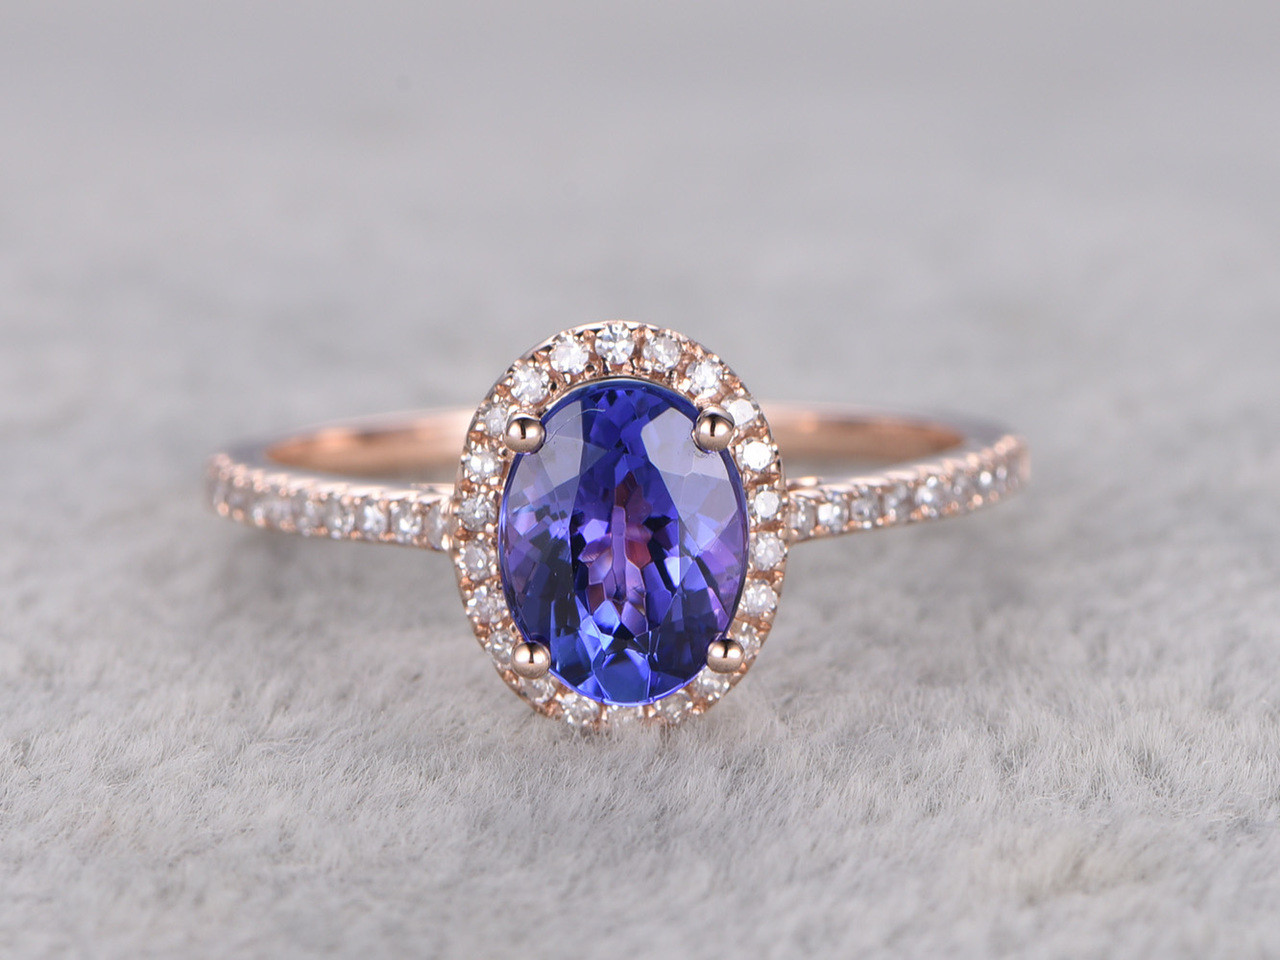 cut listing rings fullxfull eidelprecious tanzanite rose by engagement lavender il ring cushion gold blue